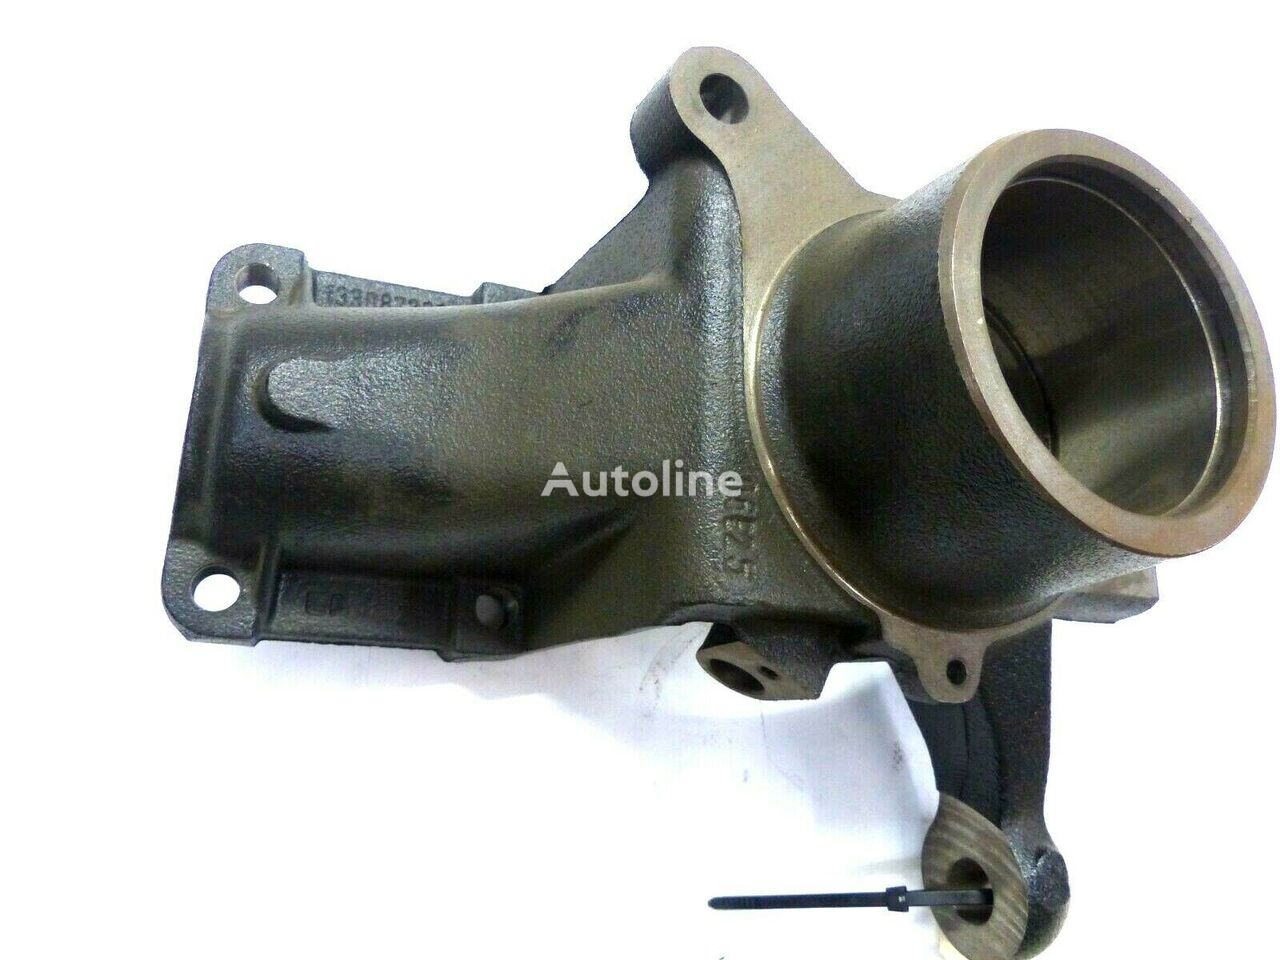 FIAT steering knuckle for FIAT BOXER JUMPER DUCATO CITROEN  commercial vehicle